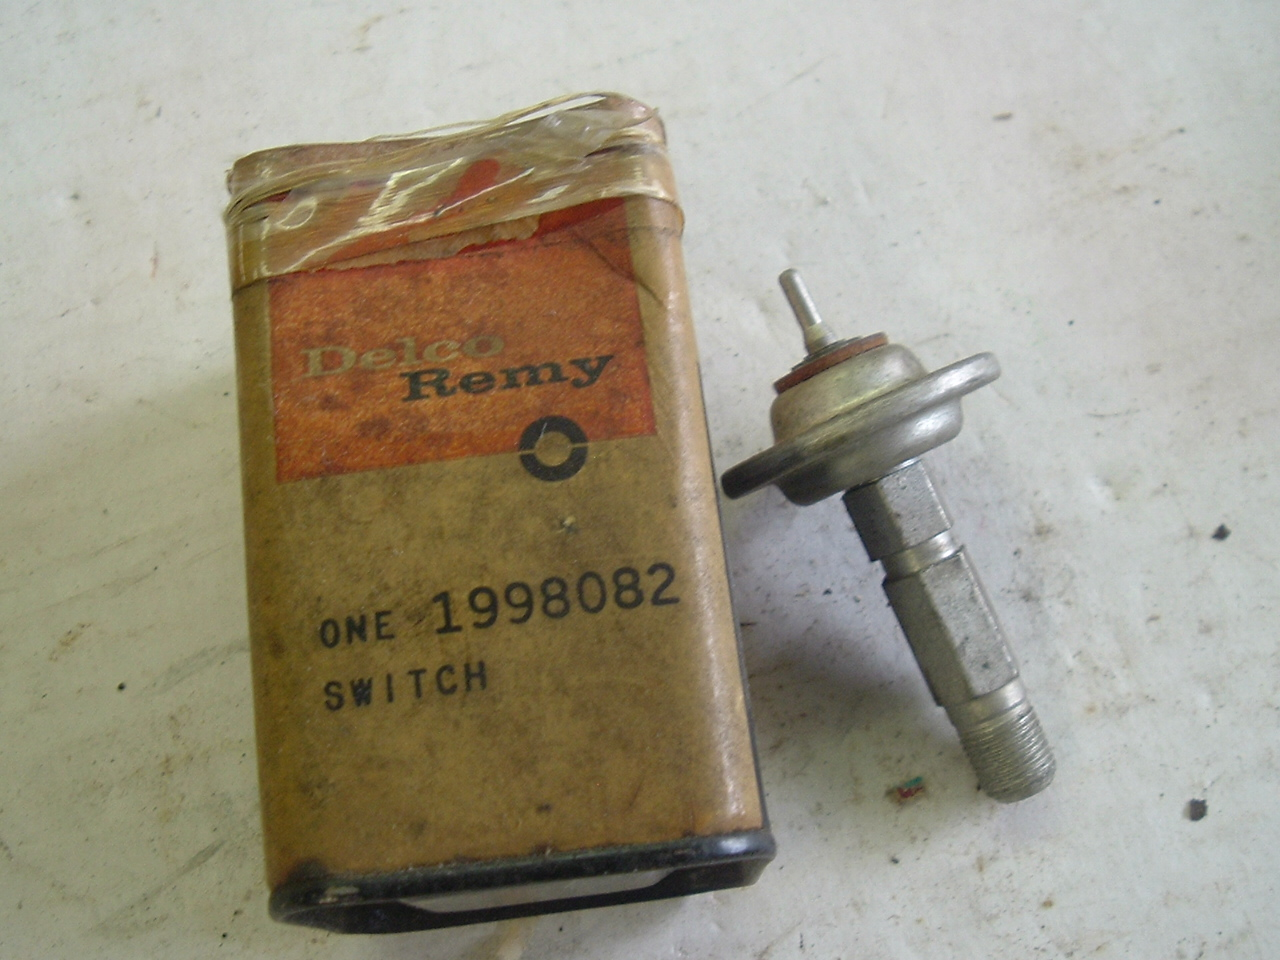 1955 Chevrolet oil pressure sending unit 1998082 (a 1998082)